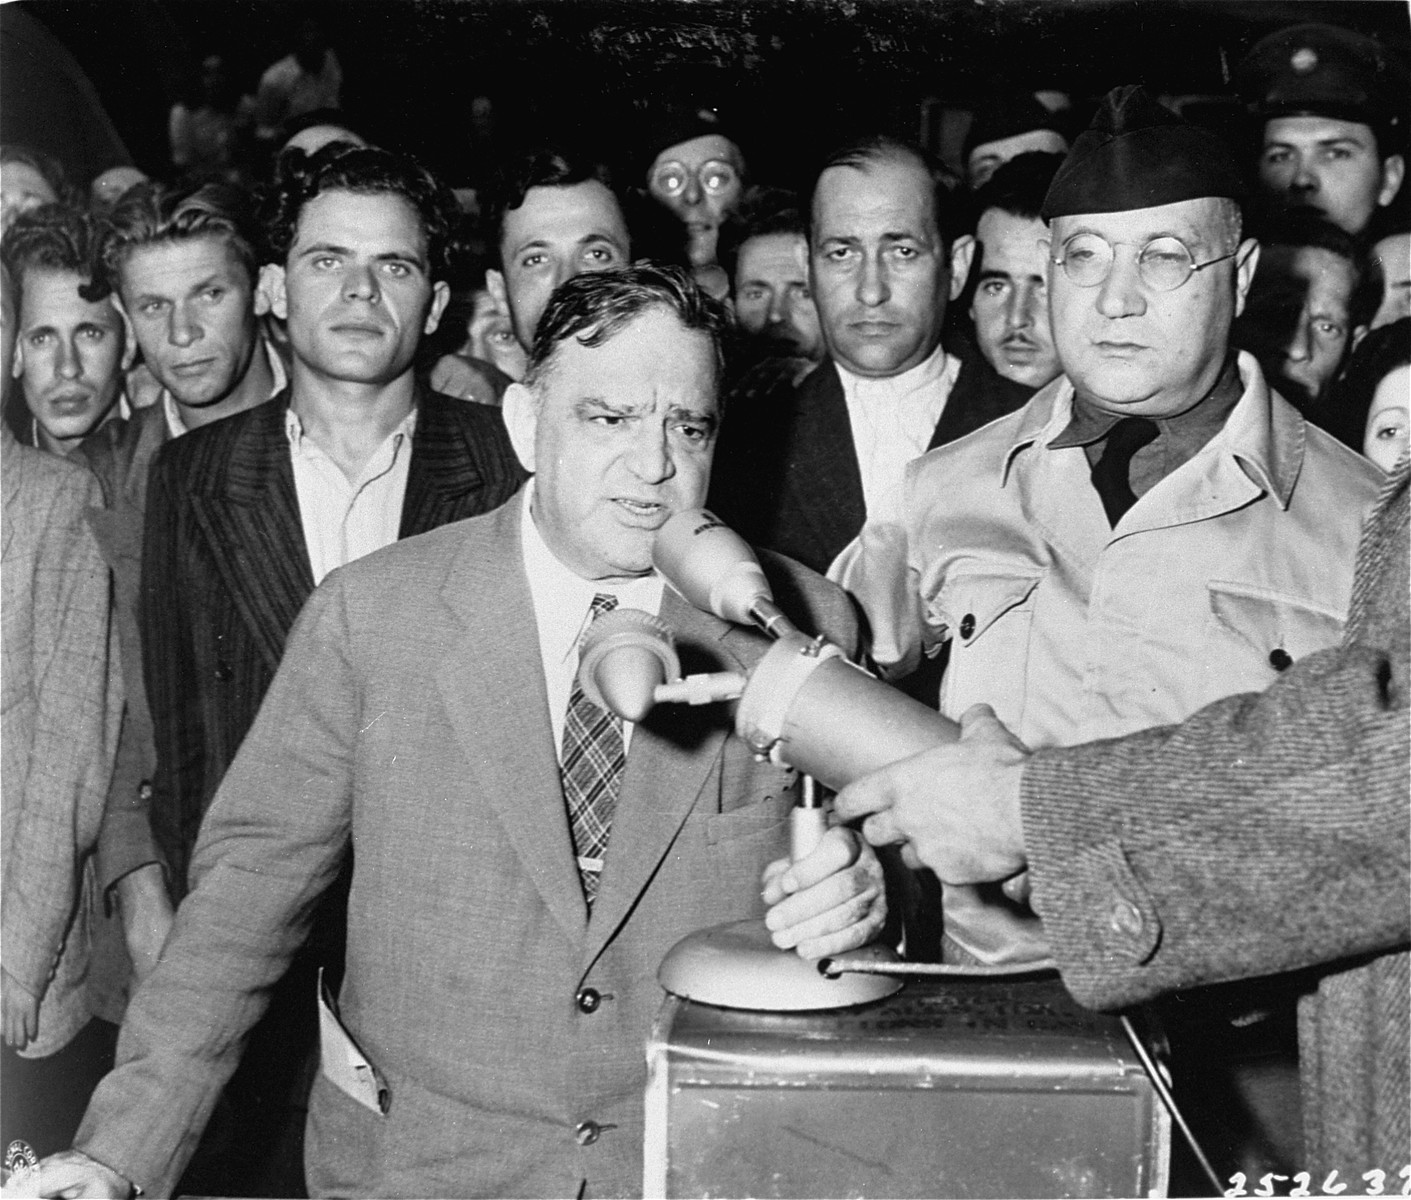 UNRRA Director General Fiorello LaGuardia delivers a speech at the Berlin-Schlachtensee displaced persons camp.    Also pictured is UNRRA Schlachtensee camp director Harold Fishbein (standing next to LaGuardia on the right).